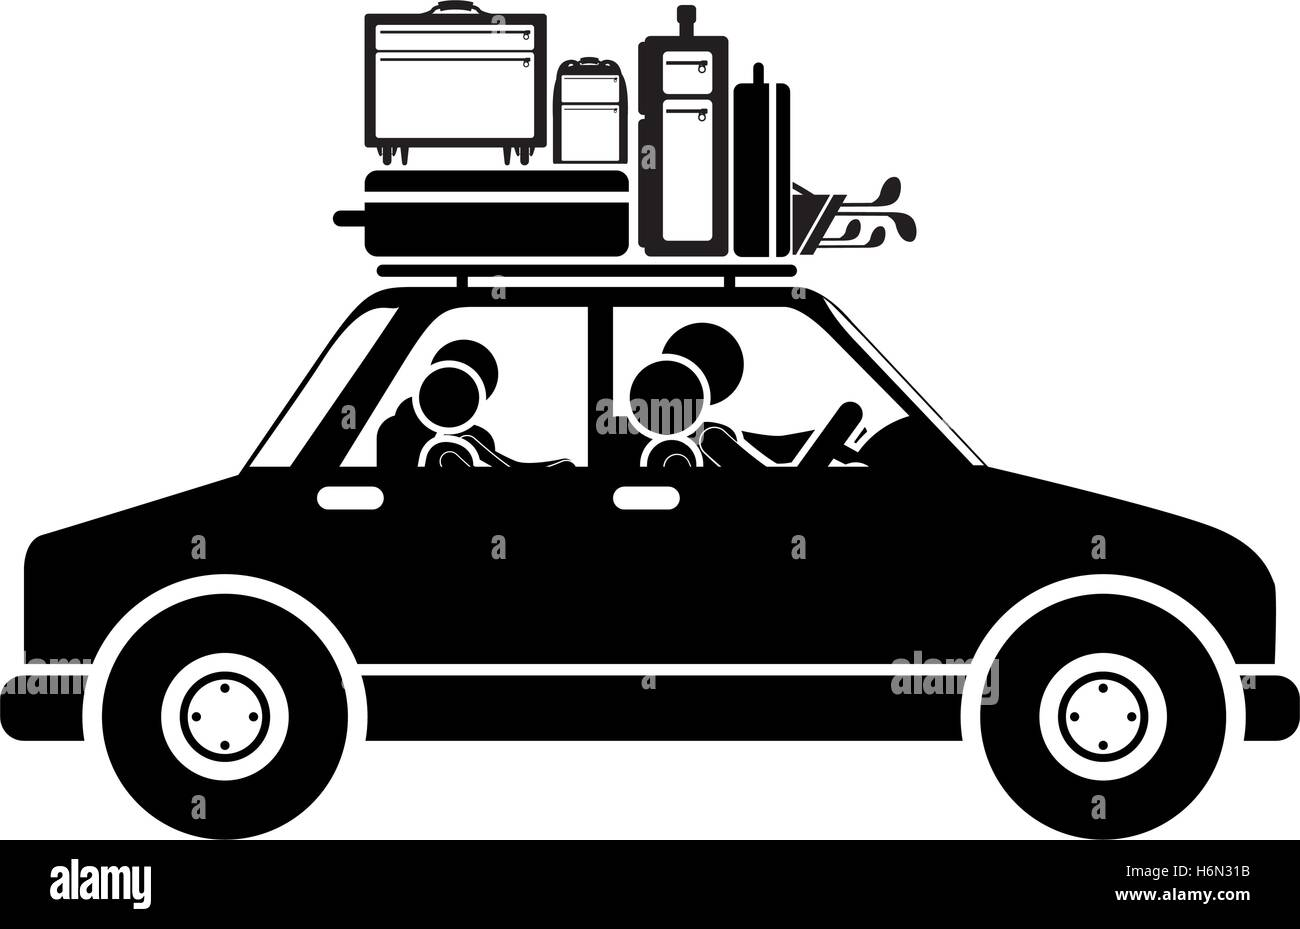 black silhouette family car with baggage vector illustration - Stock Image